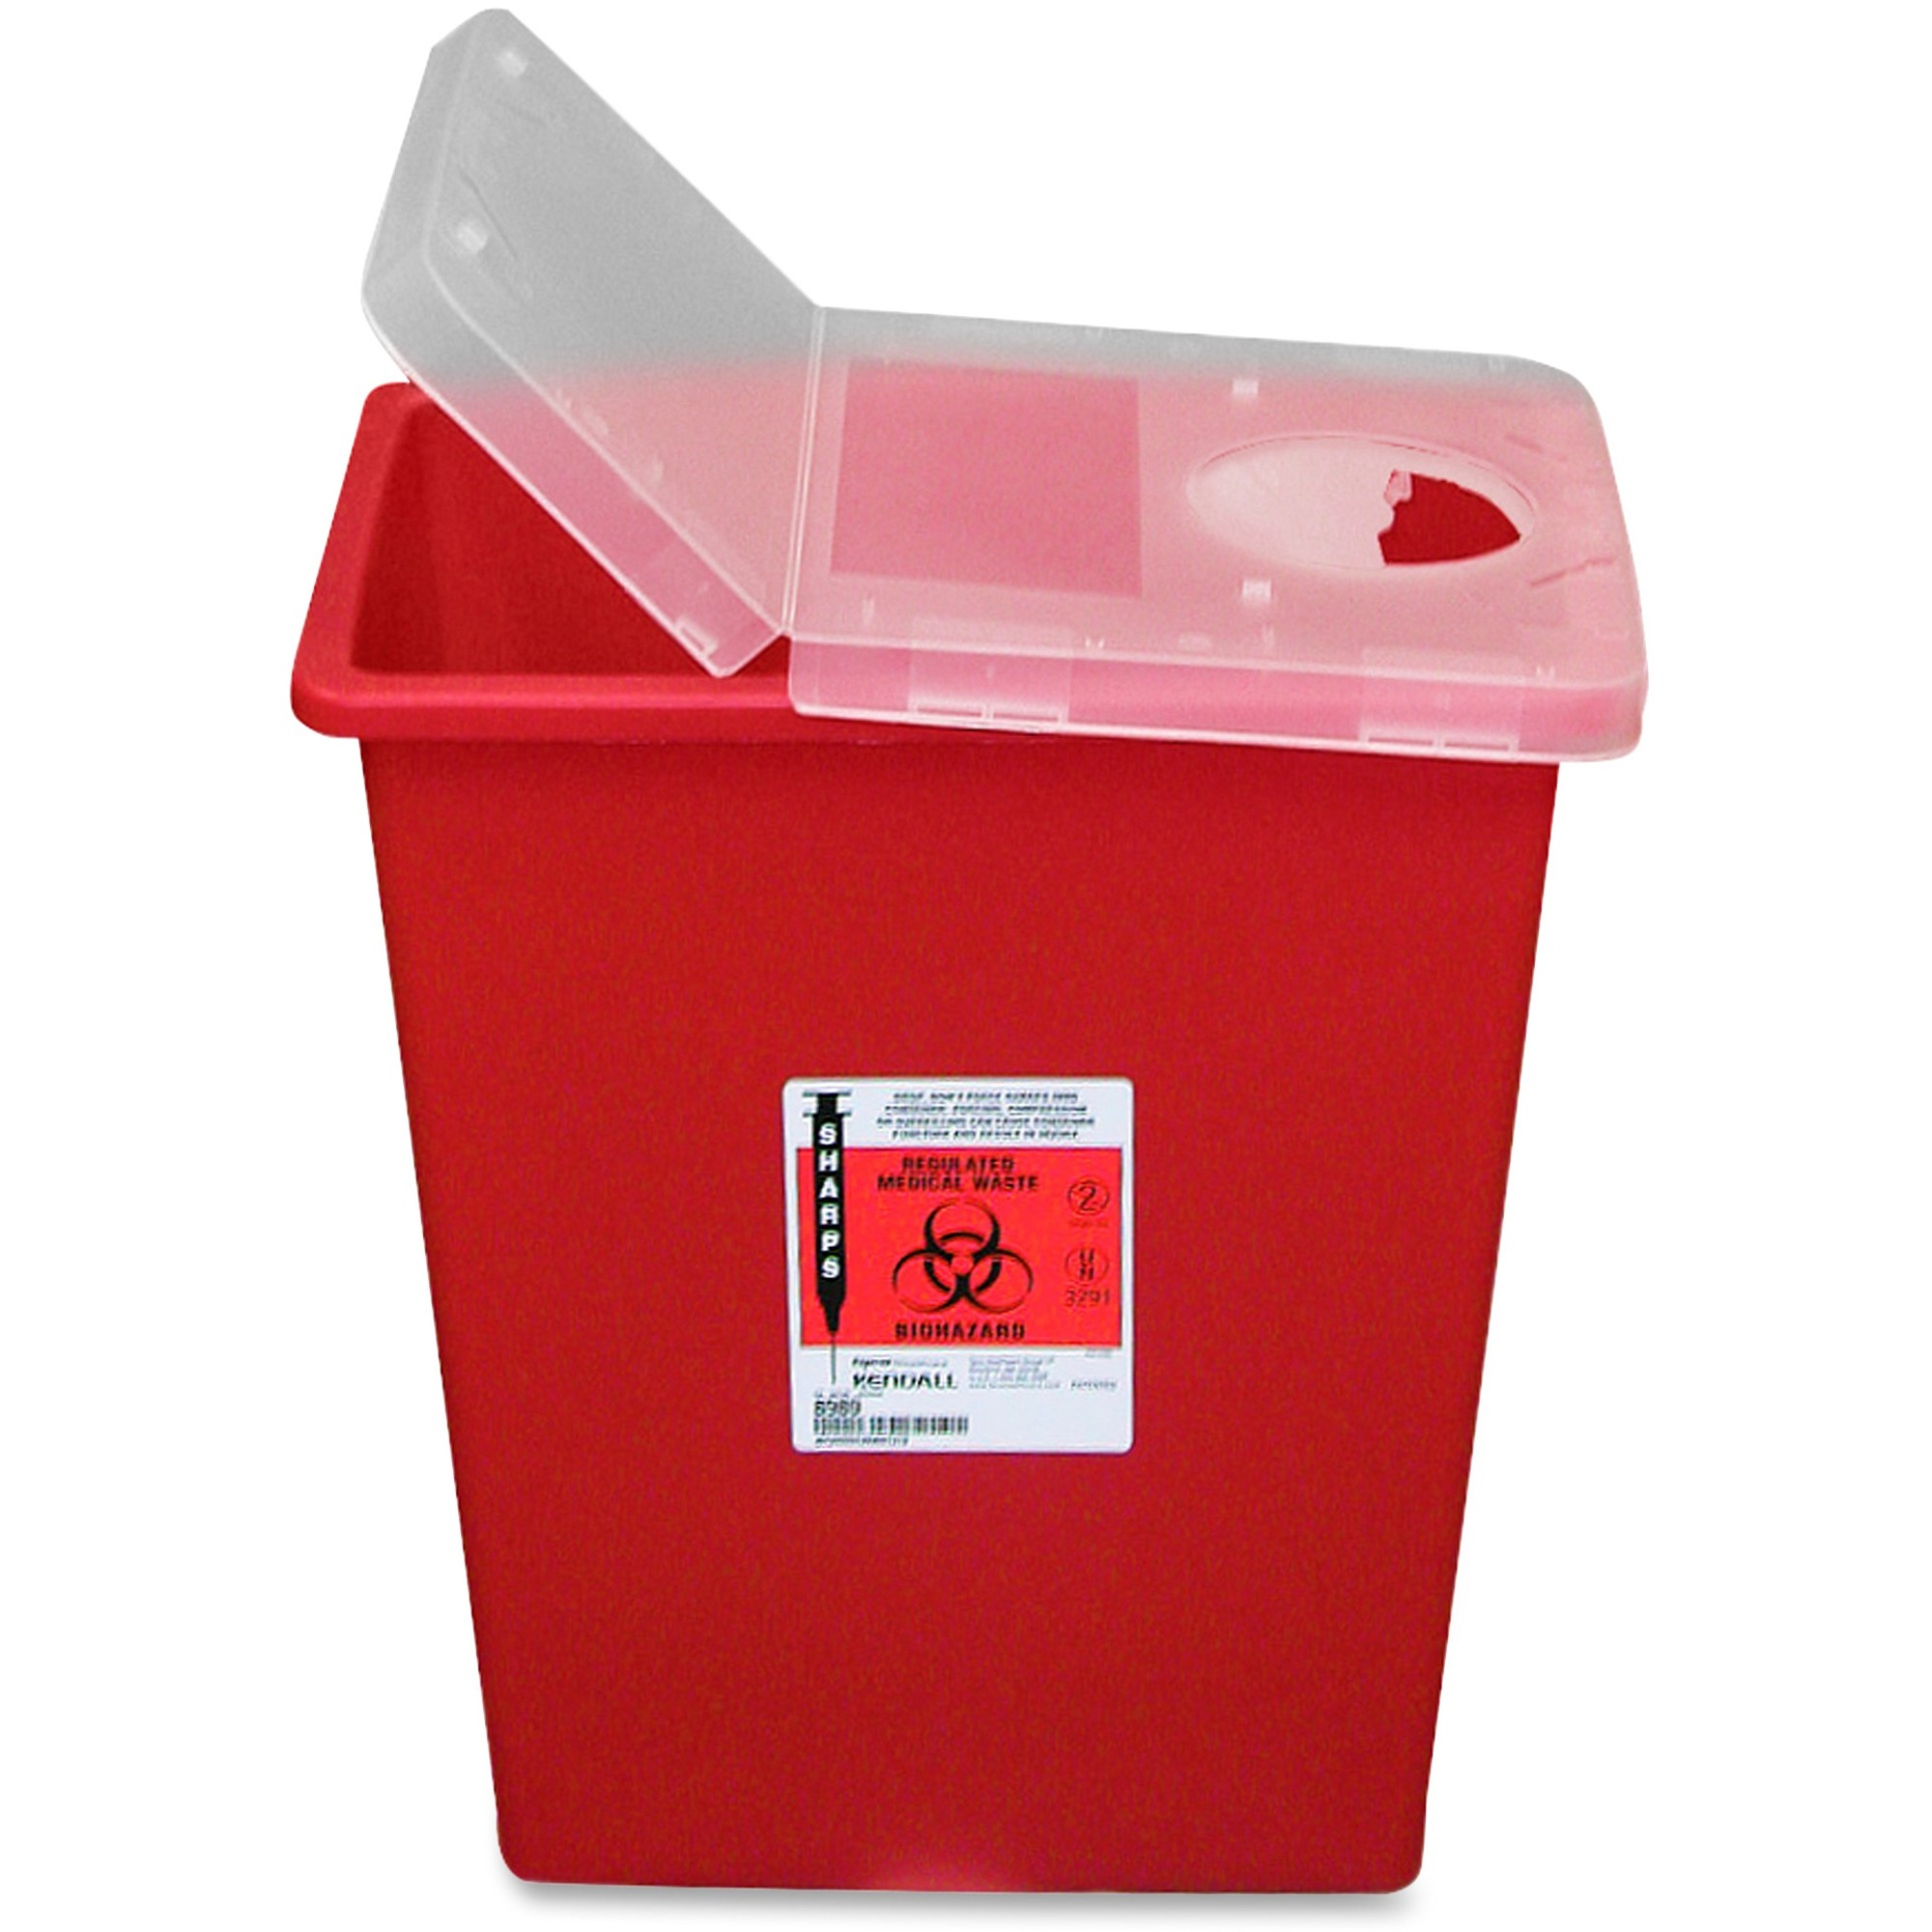 Covidien Kendall Sharps Containers with Hinged Lid - 8 gal Capacity